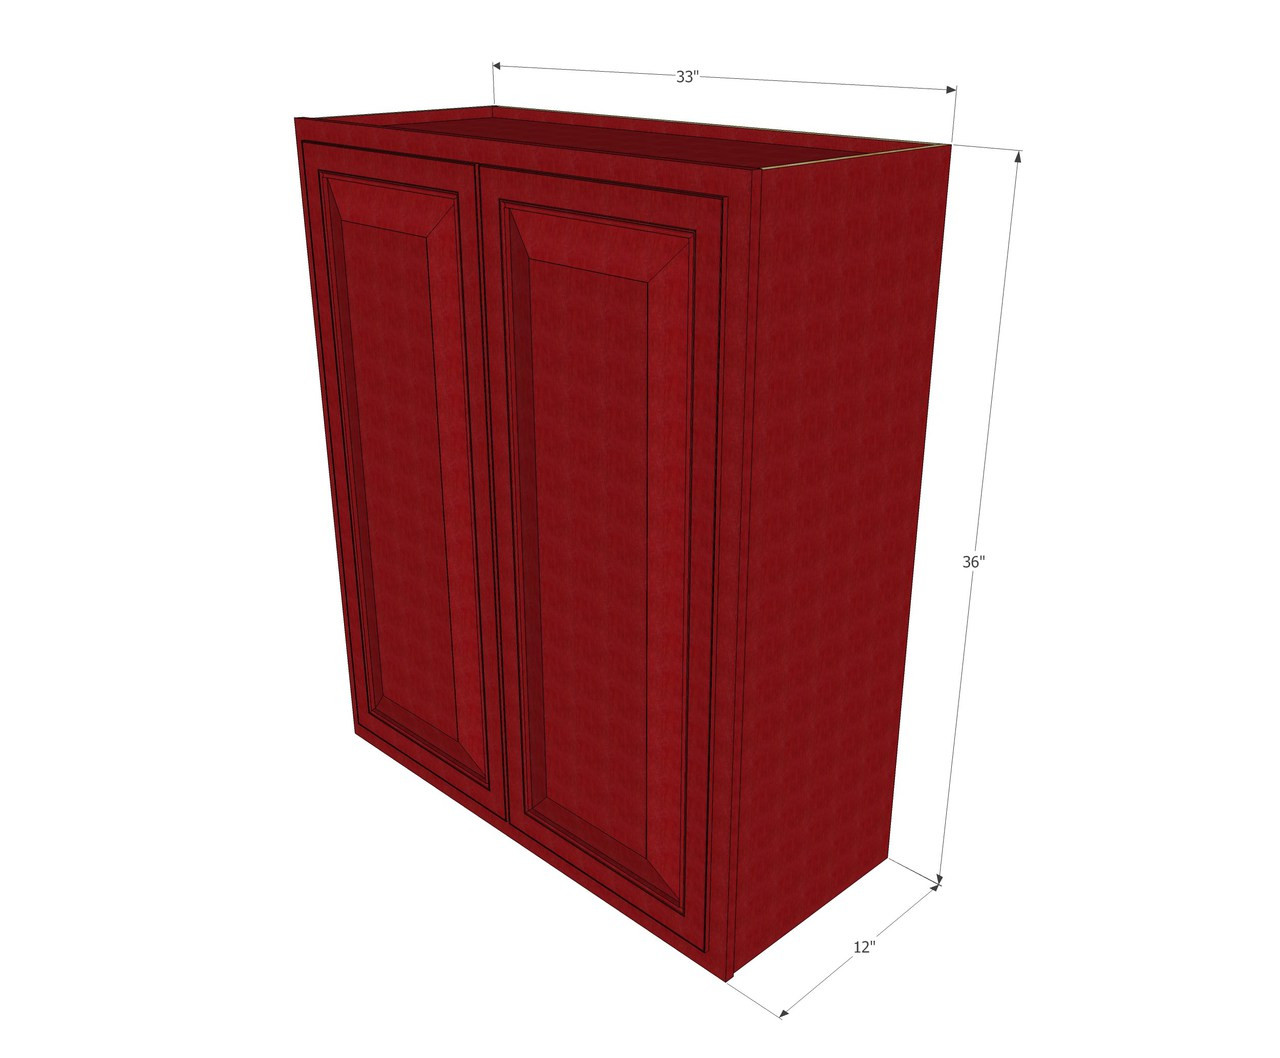 Large double door grand reserve cherry wall cabinet 33 for Kitchen cabinets 36 high